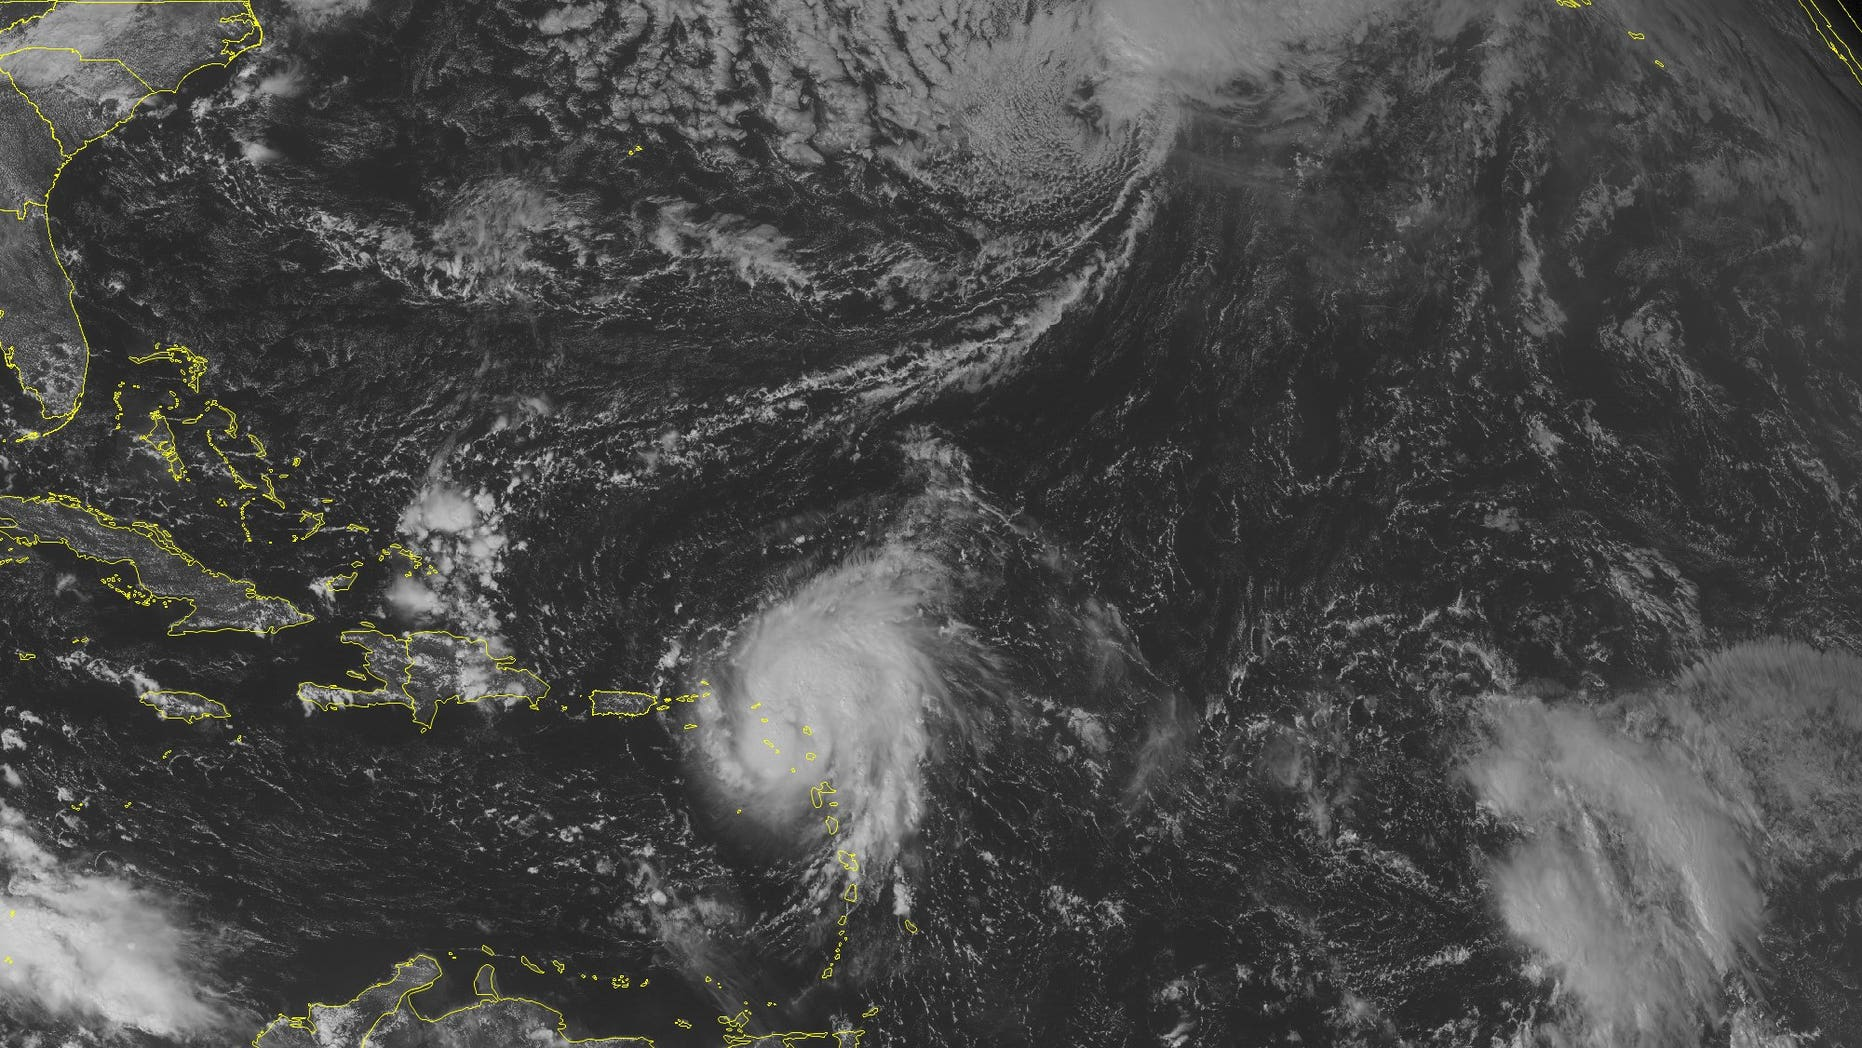 This NOAA satellite image taken Monday, October 13, 2014 at 10:45 AM EDT shows Tropical Storm Gonzalo 65 miles southeast of the island of Saint Thomas. This storm has maximum winds of 70 miles per hour and is moving northwest at 10 miles per hour. Gonzalo is expected to strengthen into a Hurricane in the coming hours and cross Puerto Rico before turning northward. Further north, Tropical Storm Fay is racing into the central Atlantic and will become post tropical. (AP PHOTO/WEATHER UNDERGROUND)